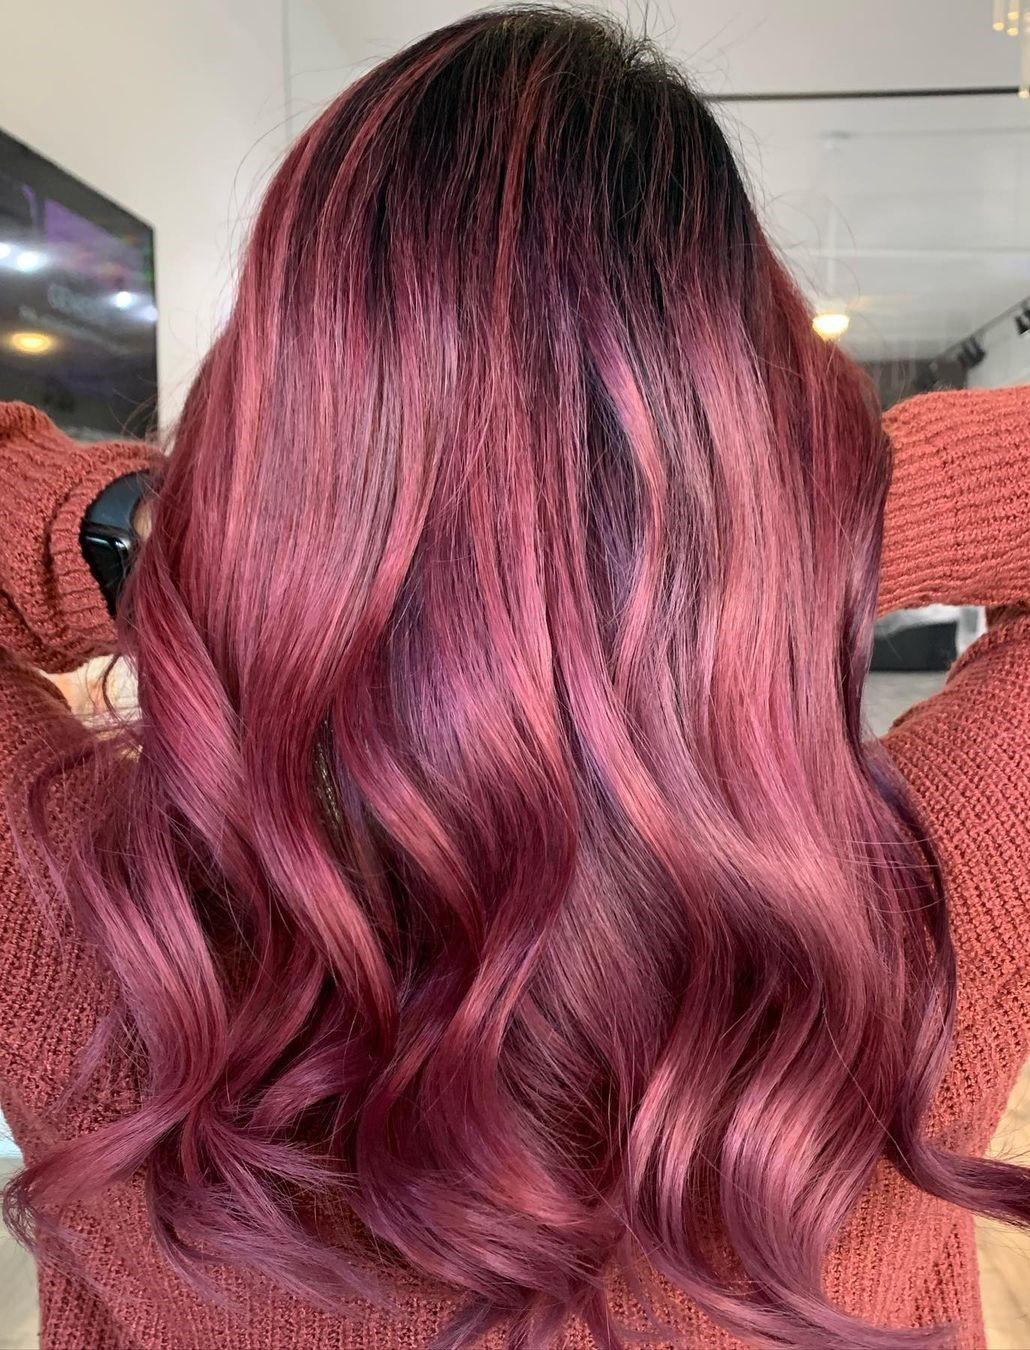 Red Wine Hair with Rose Gold Highlights